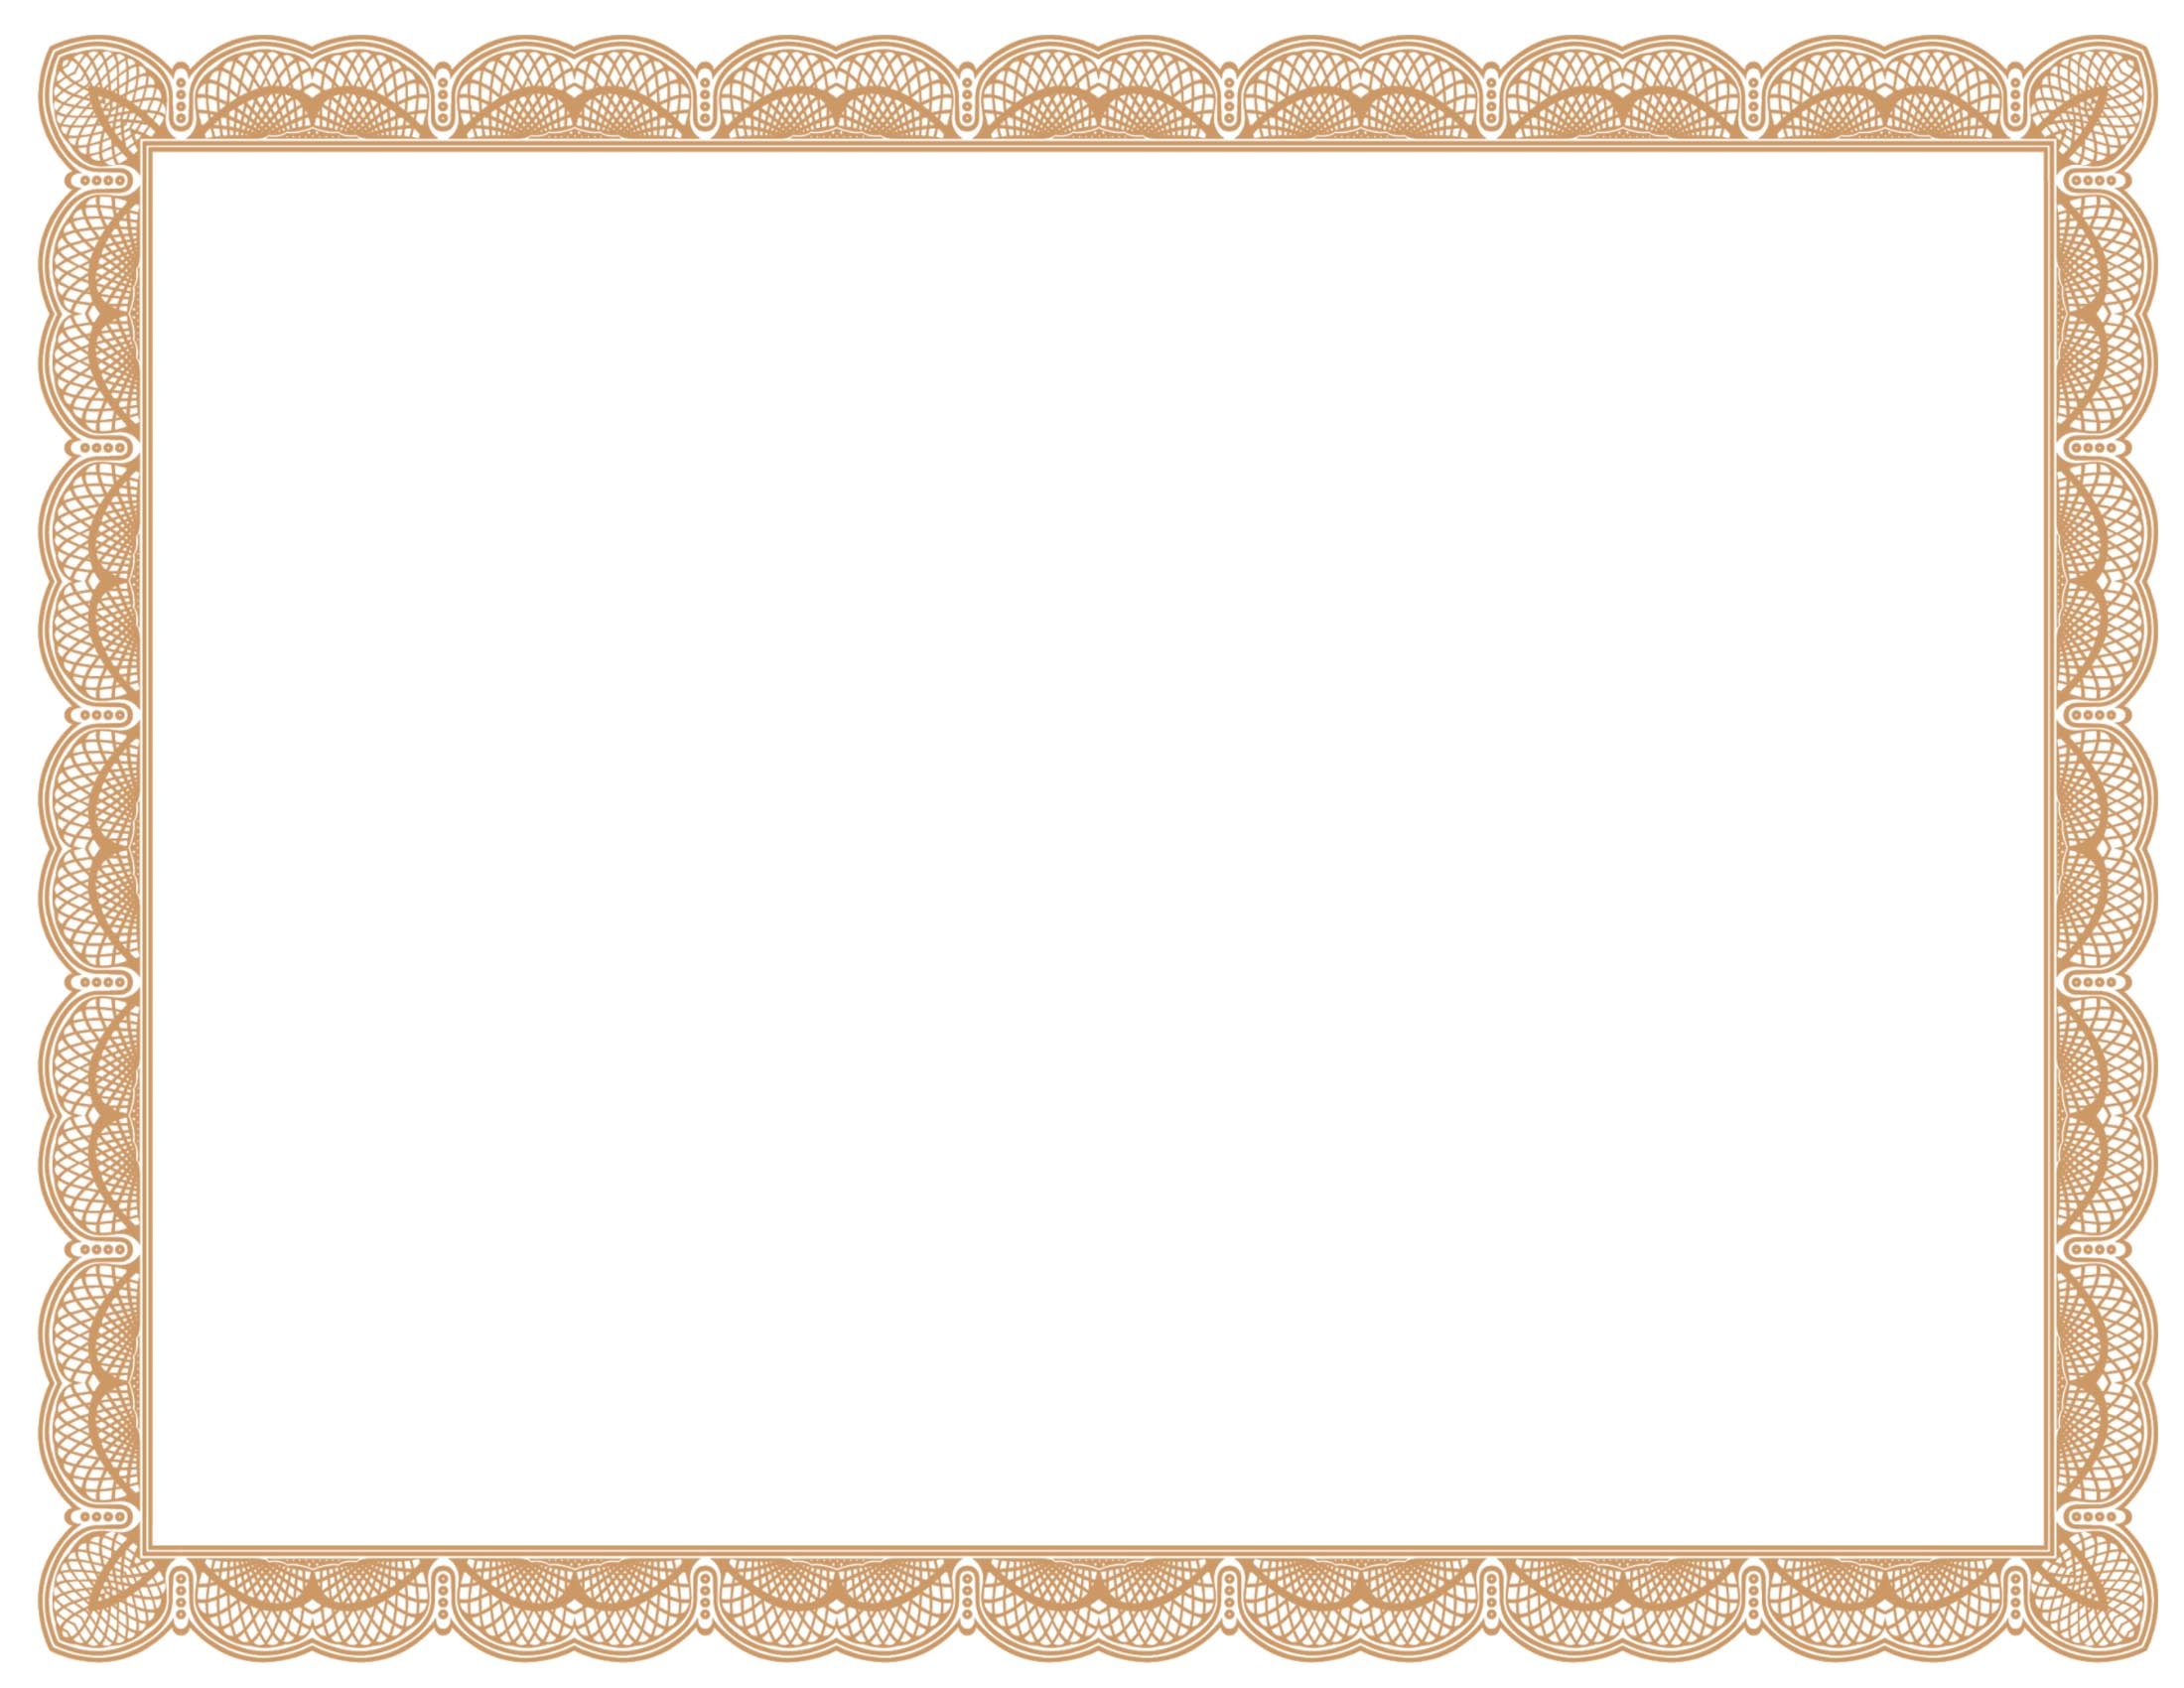 Certificate Border Clipart Free Download Best Certificate Border  Certificate Border Clipart 35 Certificate Border Clipart  Certificate Borders Free Download